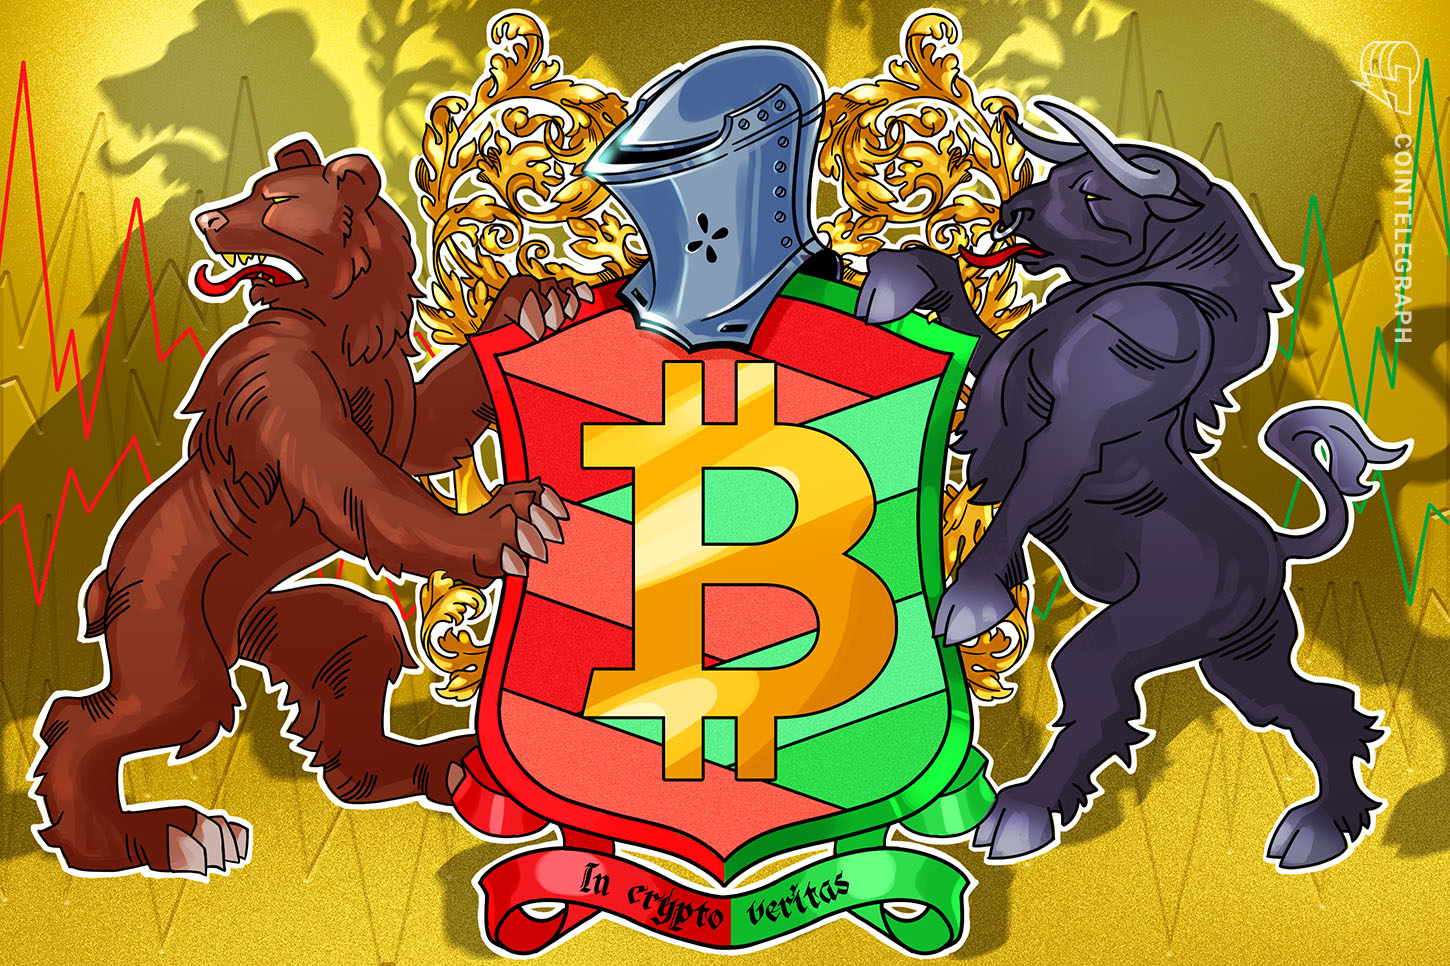 On the fence: If this is a crypto bear market, how long can it last?